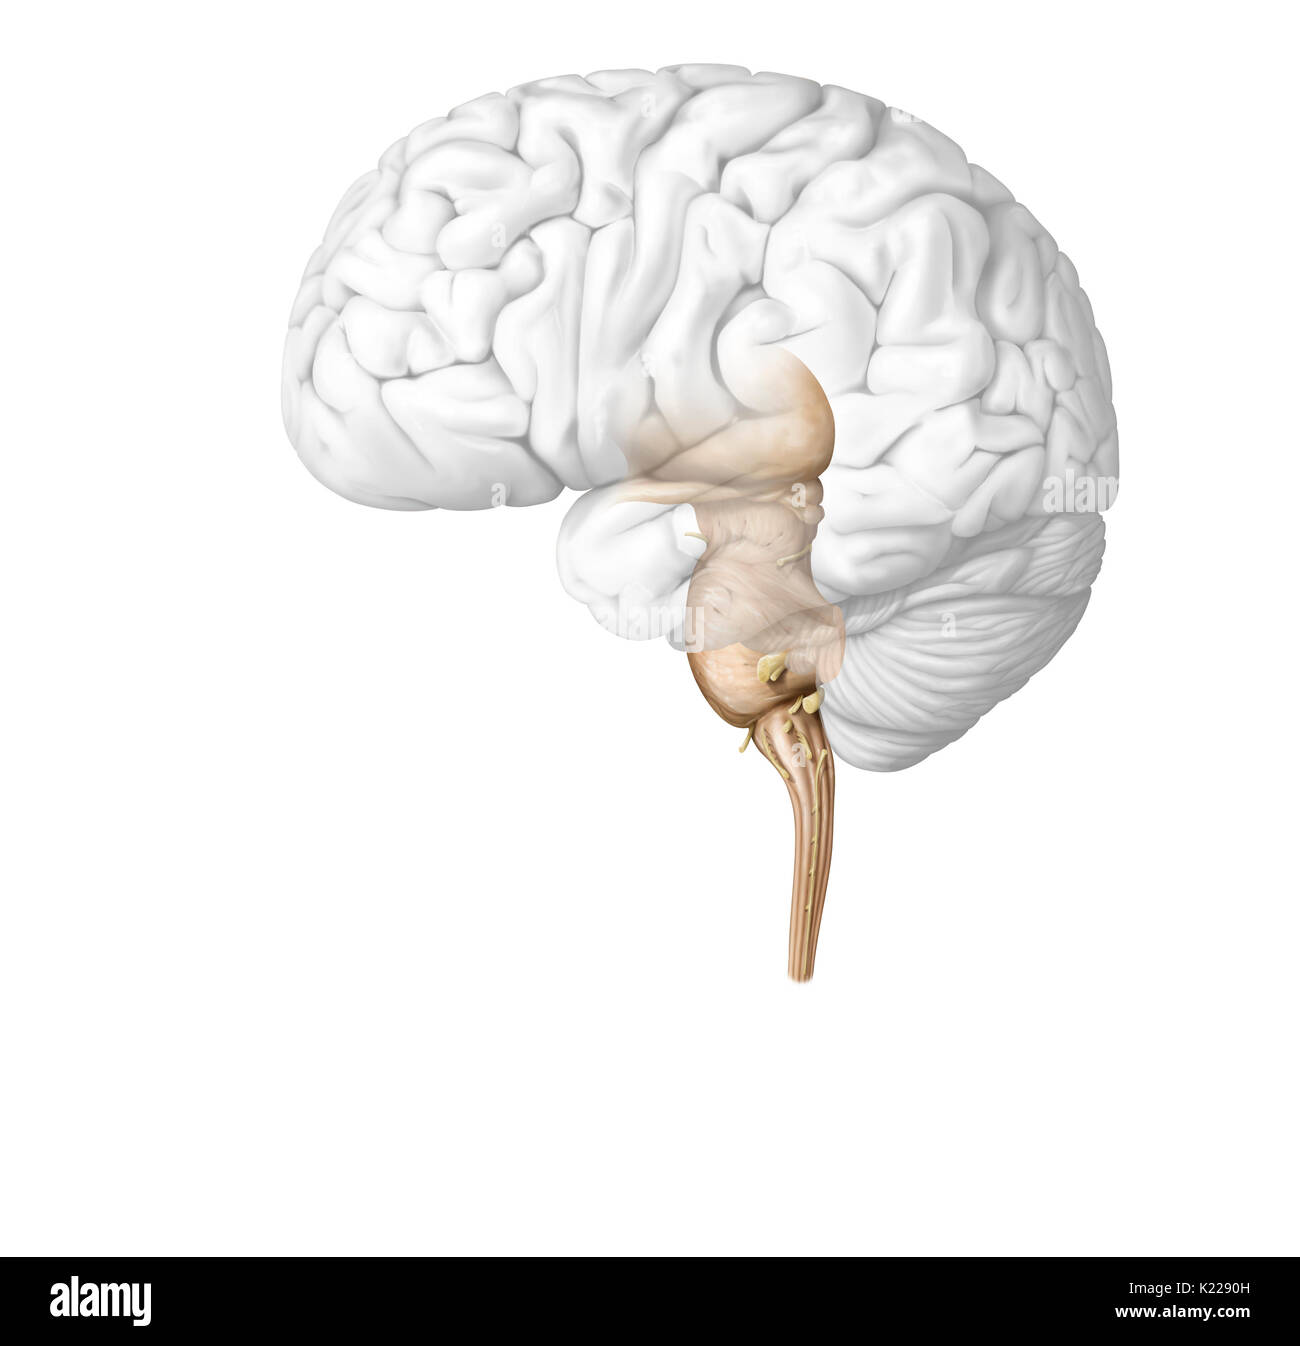 The spinal cord is formed by a cord of nervous tissue more than 16 inches (40 cm) in length located in the vertebral canal, inside the spinal column. It spans from the spinal bulb to the second lumbar vertebra and is extended by a collection of nervous fibers, the cauda equina. Composed of motor and sensory neurons, the spinal cord ensures the transmission of messages between the spinal nerves and the brain, in addition to being a reflex center. - Stock Image